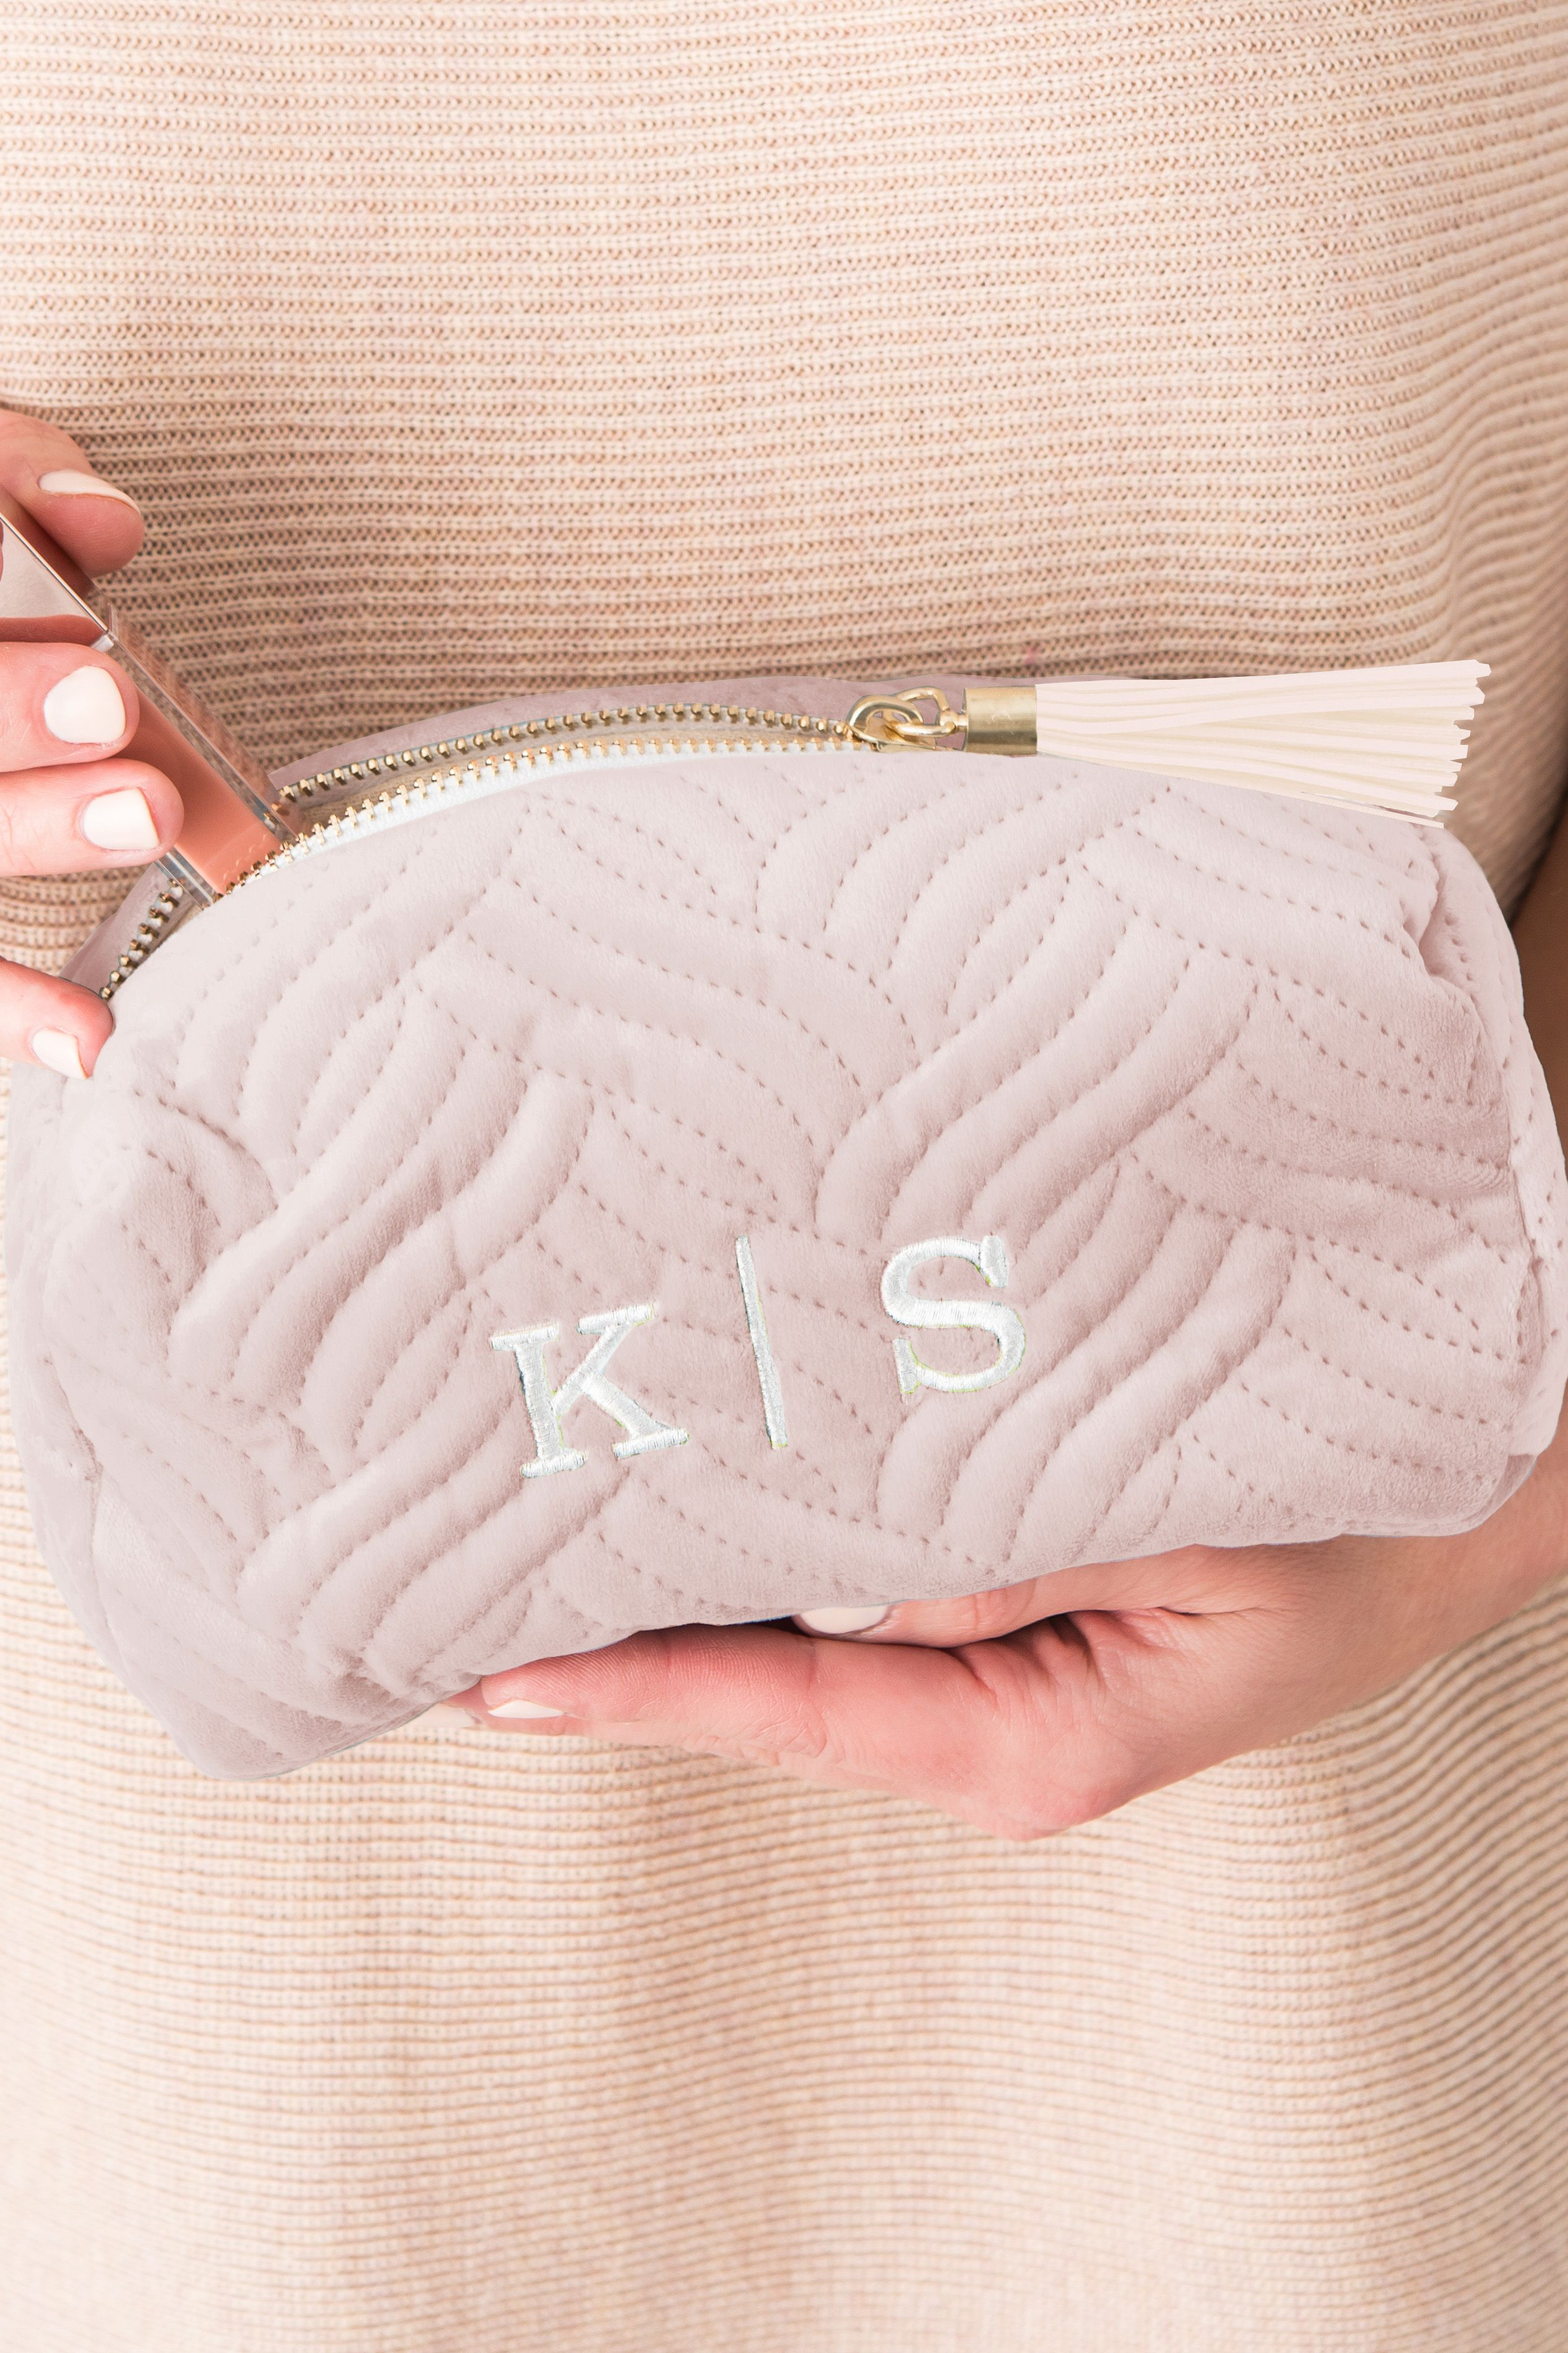 Here is a cute ultra-soft blush pink personalized velvet makeup bag. This cosmetic  bag with a tassel pull is small enough to toss into your tote bag or ... e0916d750fae7